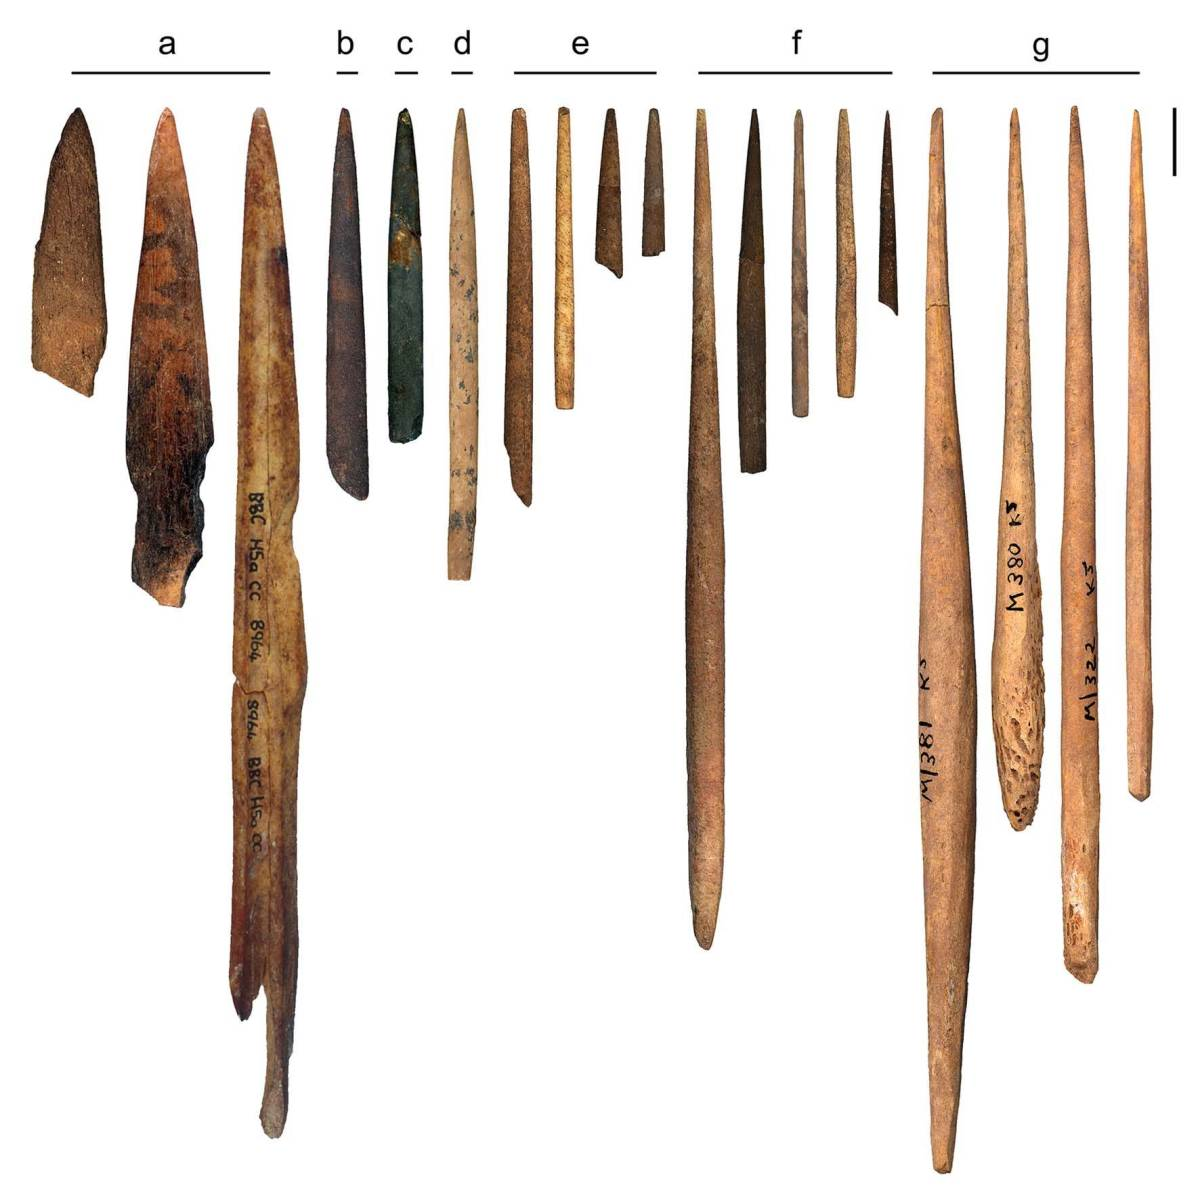 Bone points from various deposits at Early Modern Human sites in South Africa. From the blombos Cave (a) Peers Cave (b) Sibudu Cave (C) Klasies River (d) Later Stone Age Cottage Caves (e) Jubilee Shelter (f) Iron age at Mapumgubwe (g) Scale Bar